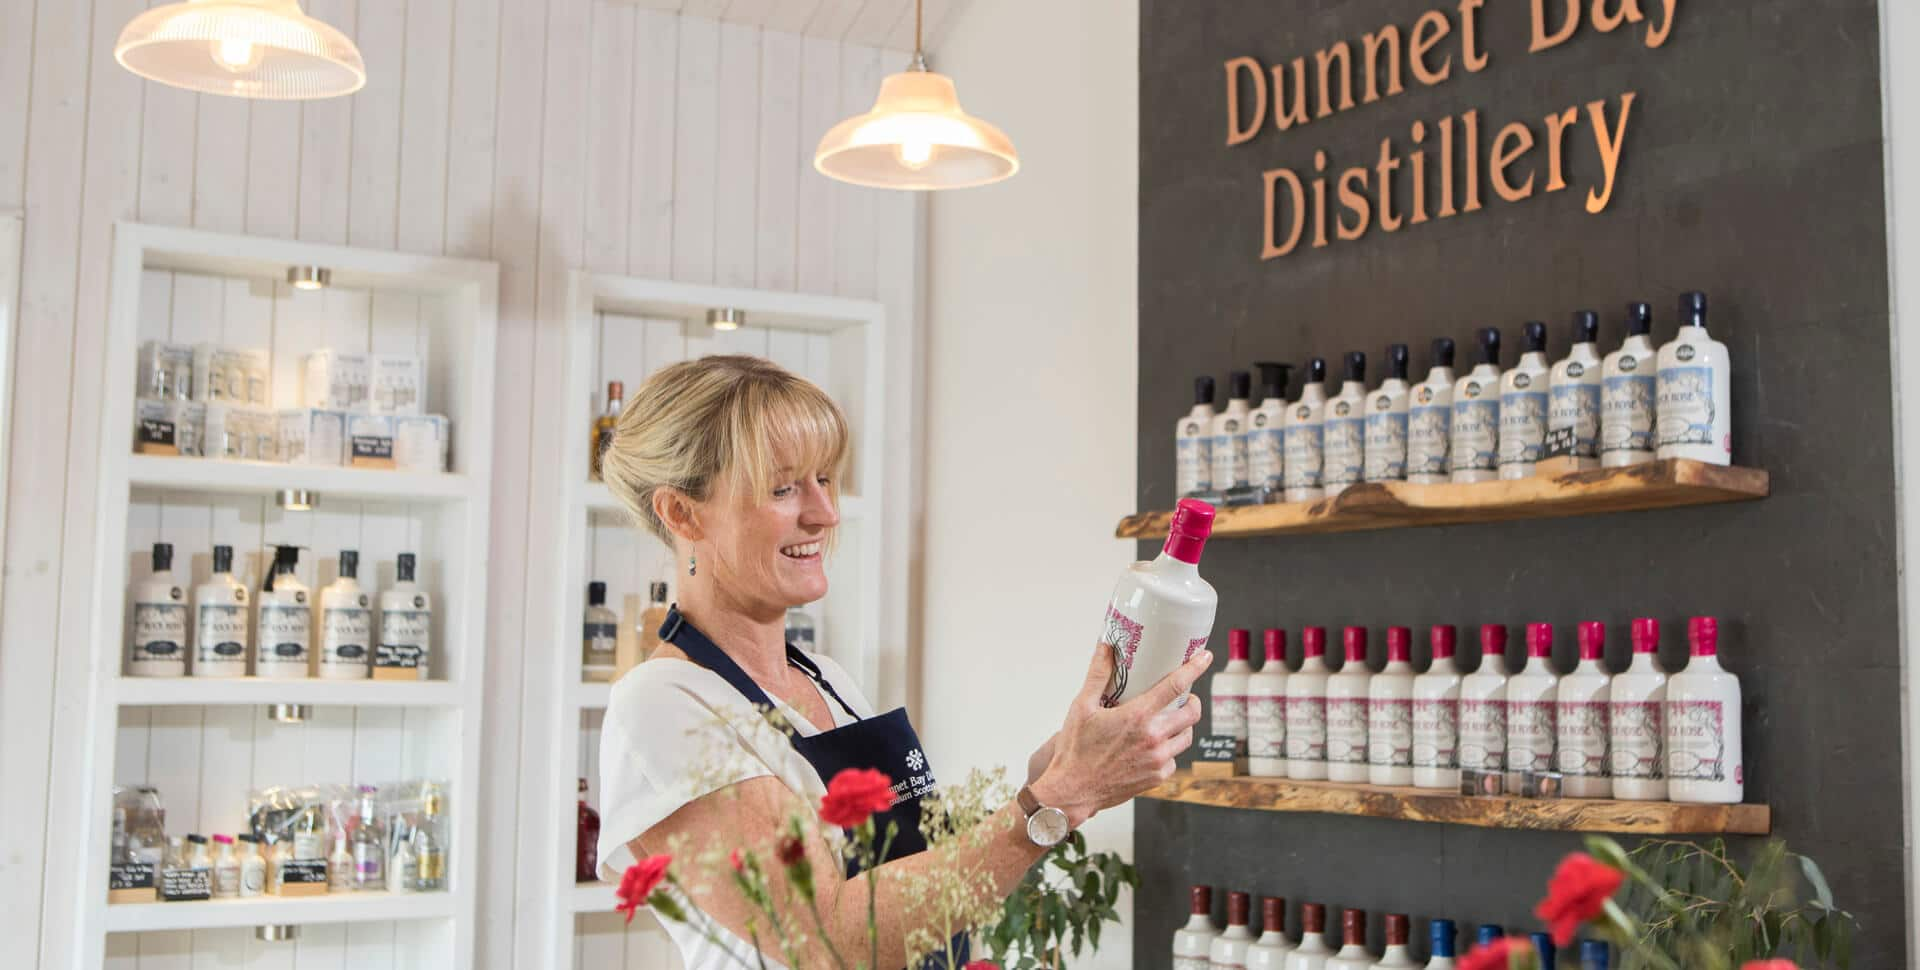 Libby Dunnet Bay Distillery Shop